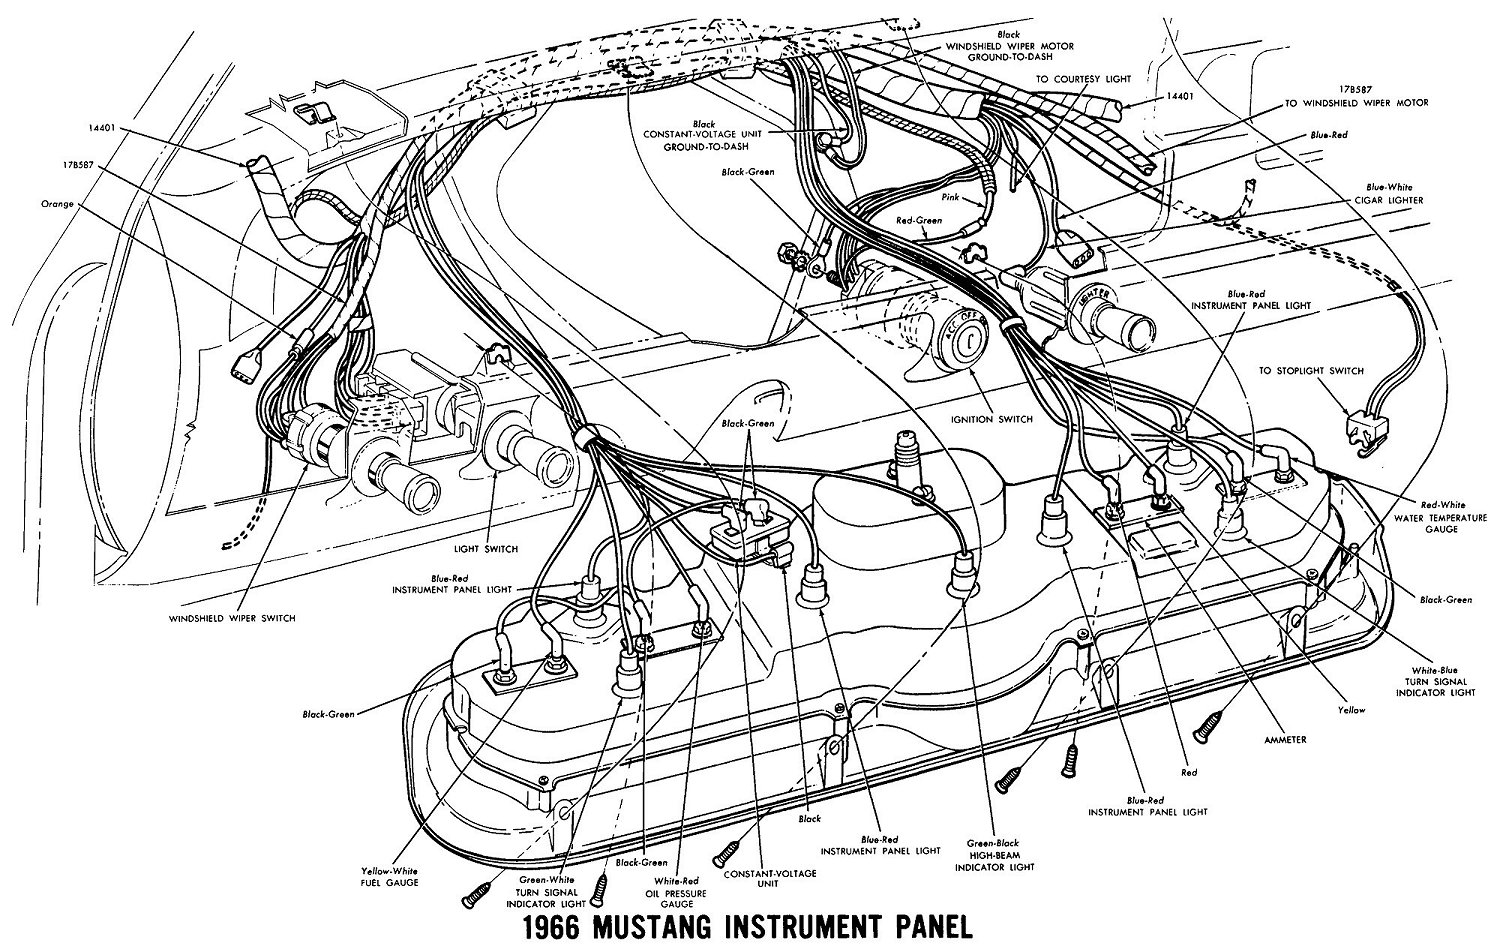 66instr 1966 mustang wiring diagrams average joe restoration 1969 mustang dash wiring diagram at fashall.co